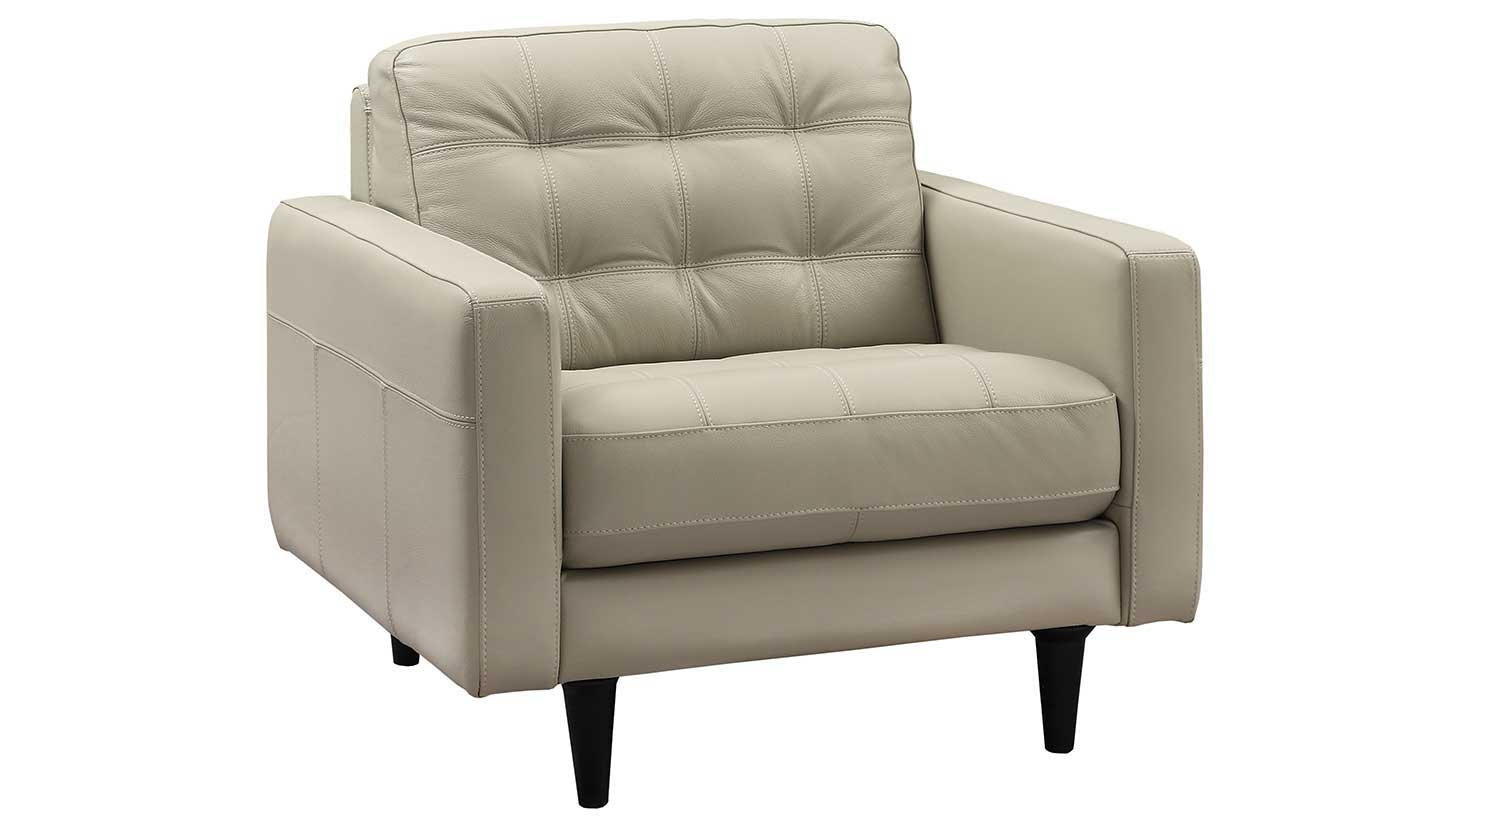 Circle Furniture - Fairfield Chair  Leather Living Room Furniture ...